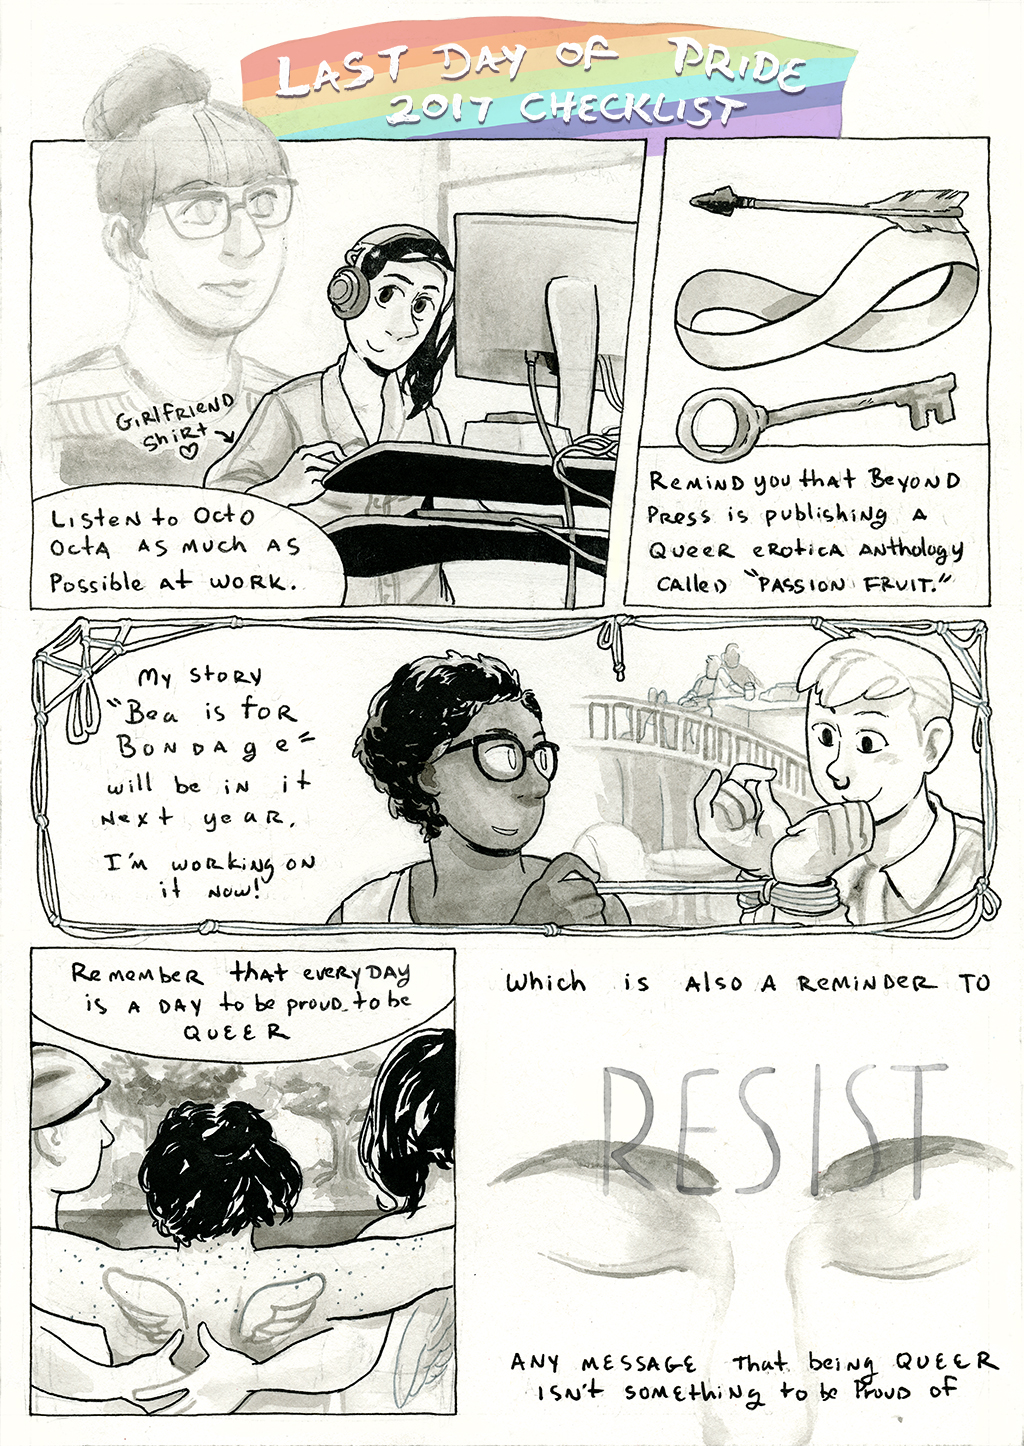 Diary comic page outlining last day of pride checklist. Transcription below.